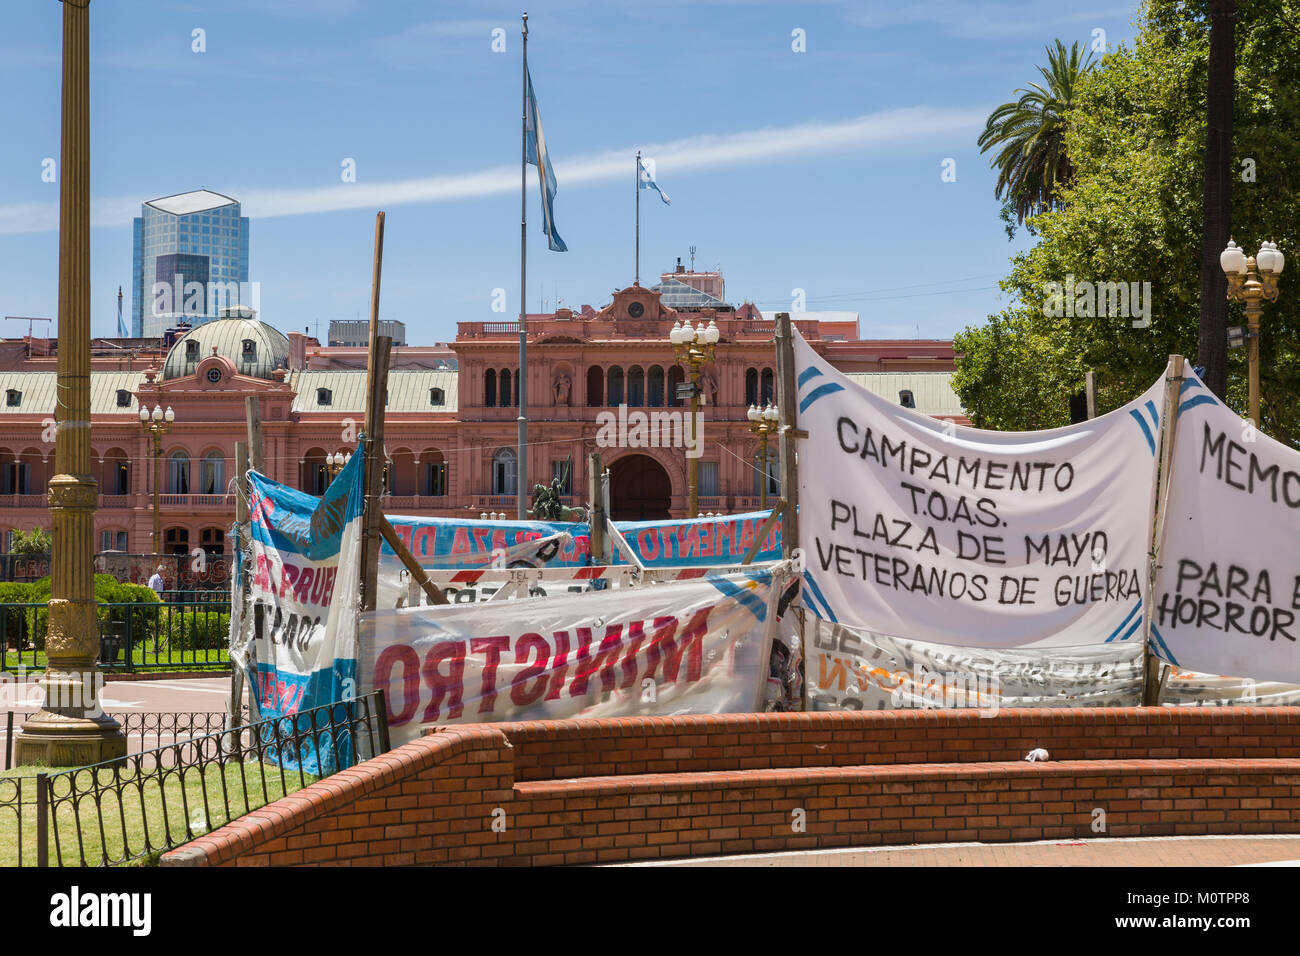 Protest banners in front of Casa Rosada in Buenos Aires, Argentina - Stock Image